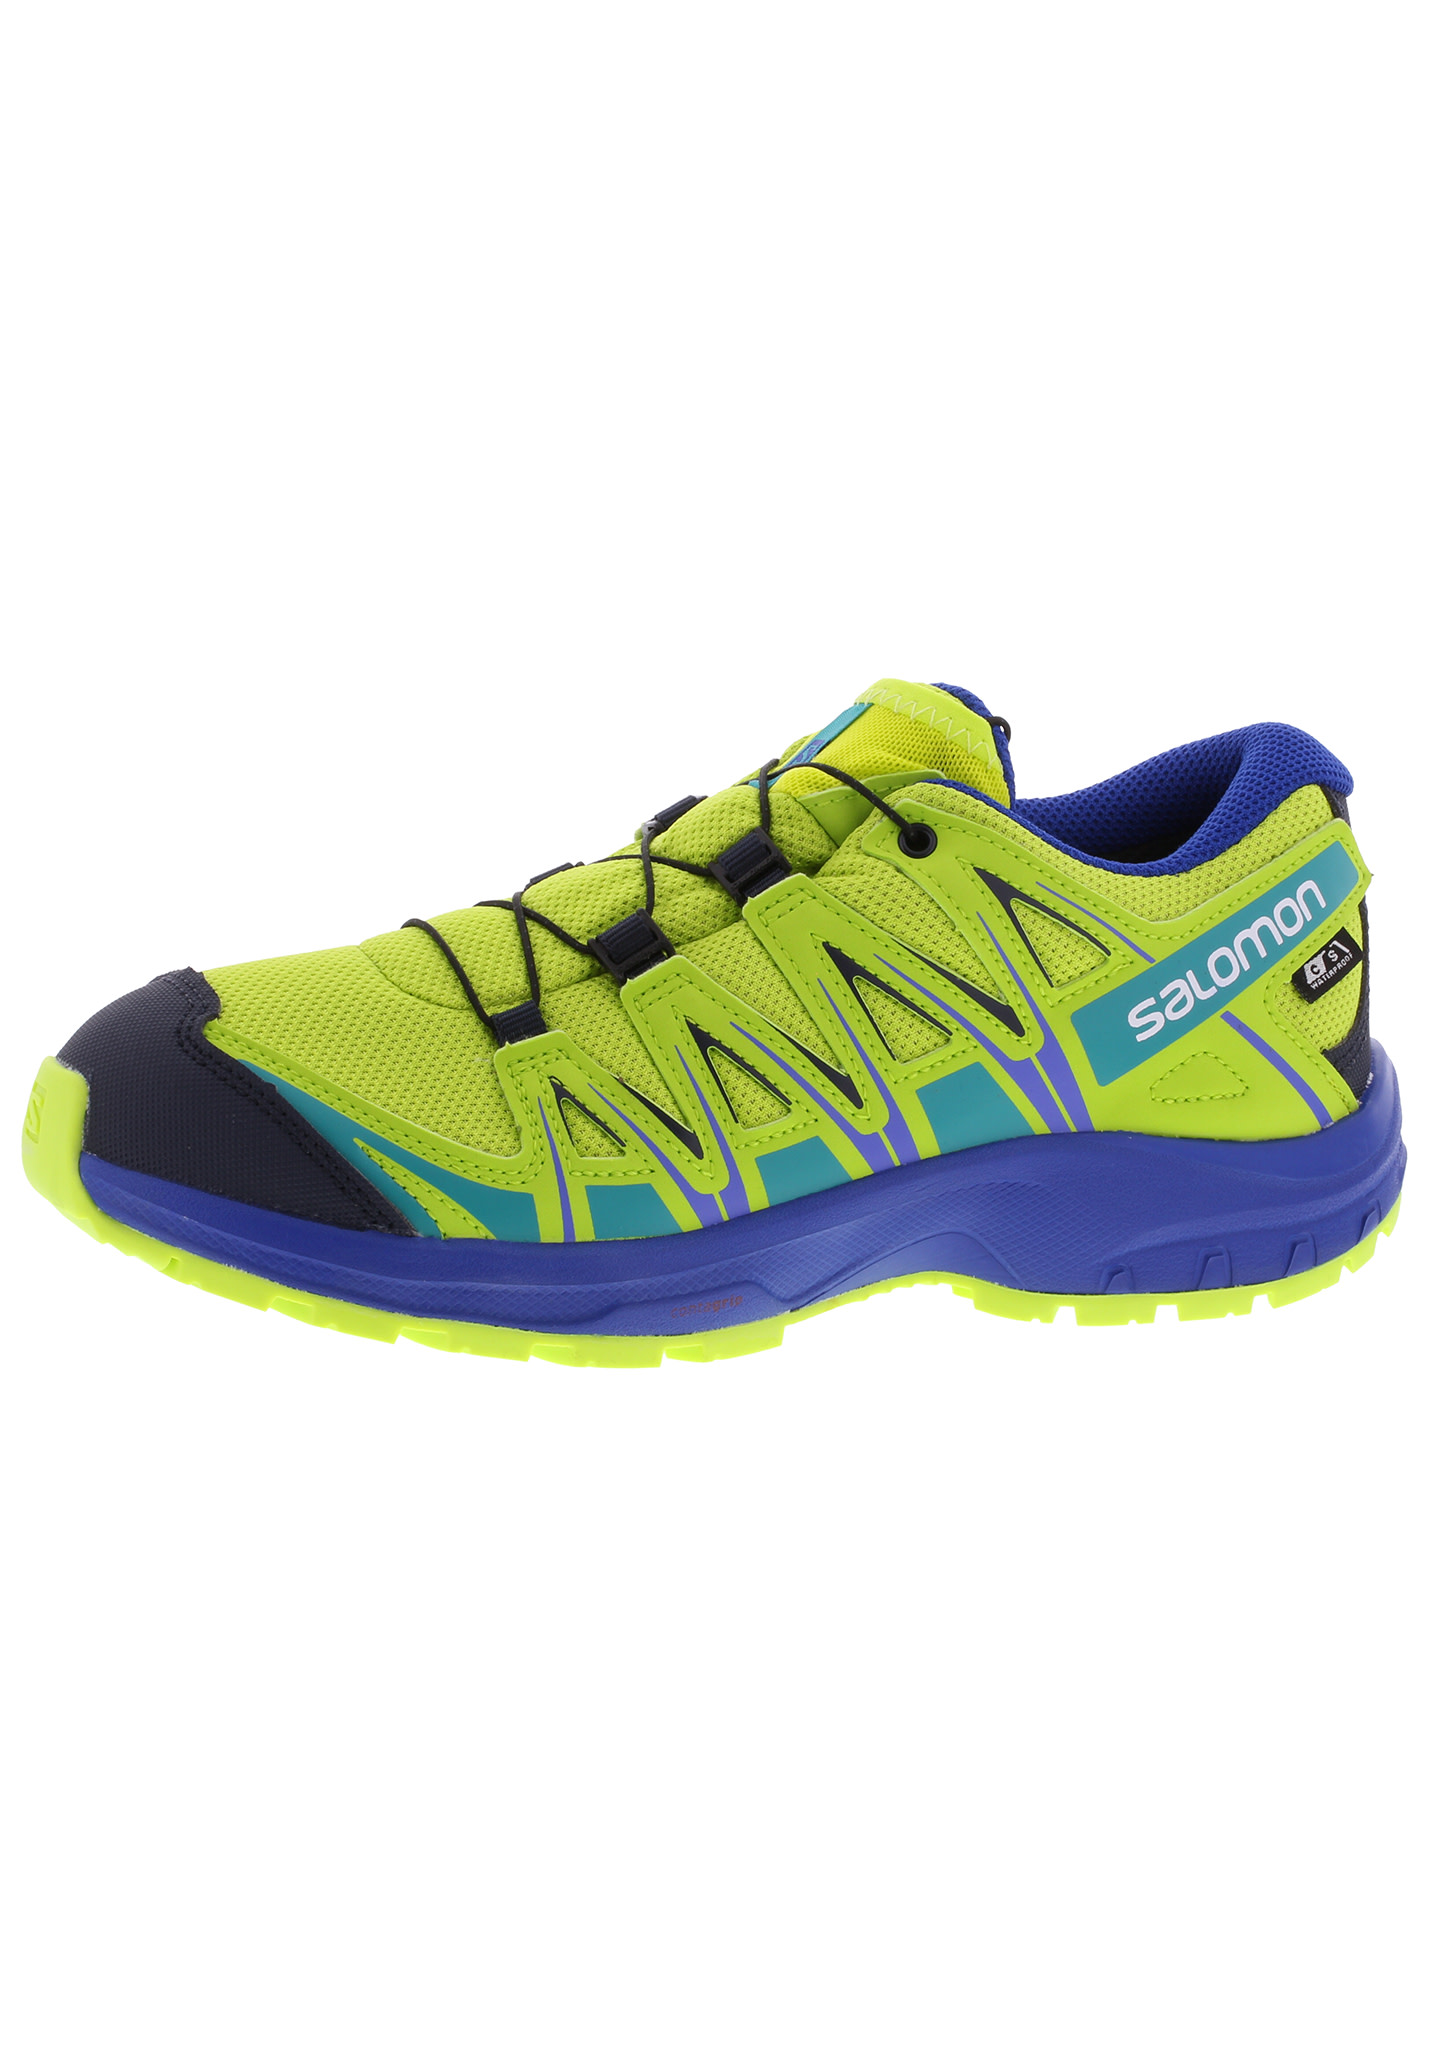 newest 5e57b 124ae Salomon XA Pro 3D CSWP - Running shoes - Green   21RUN